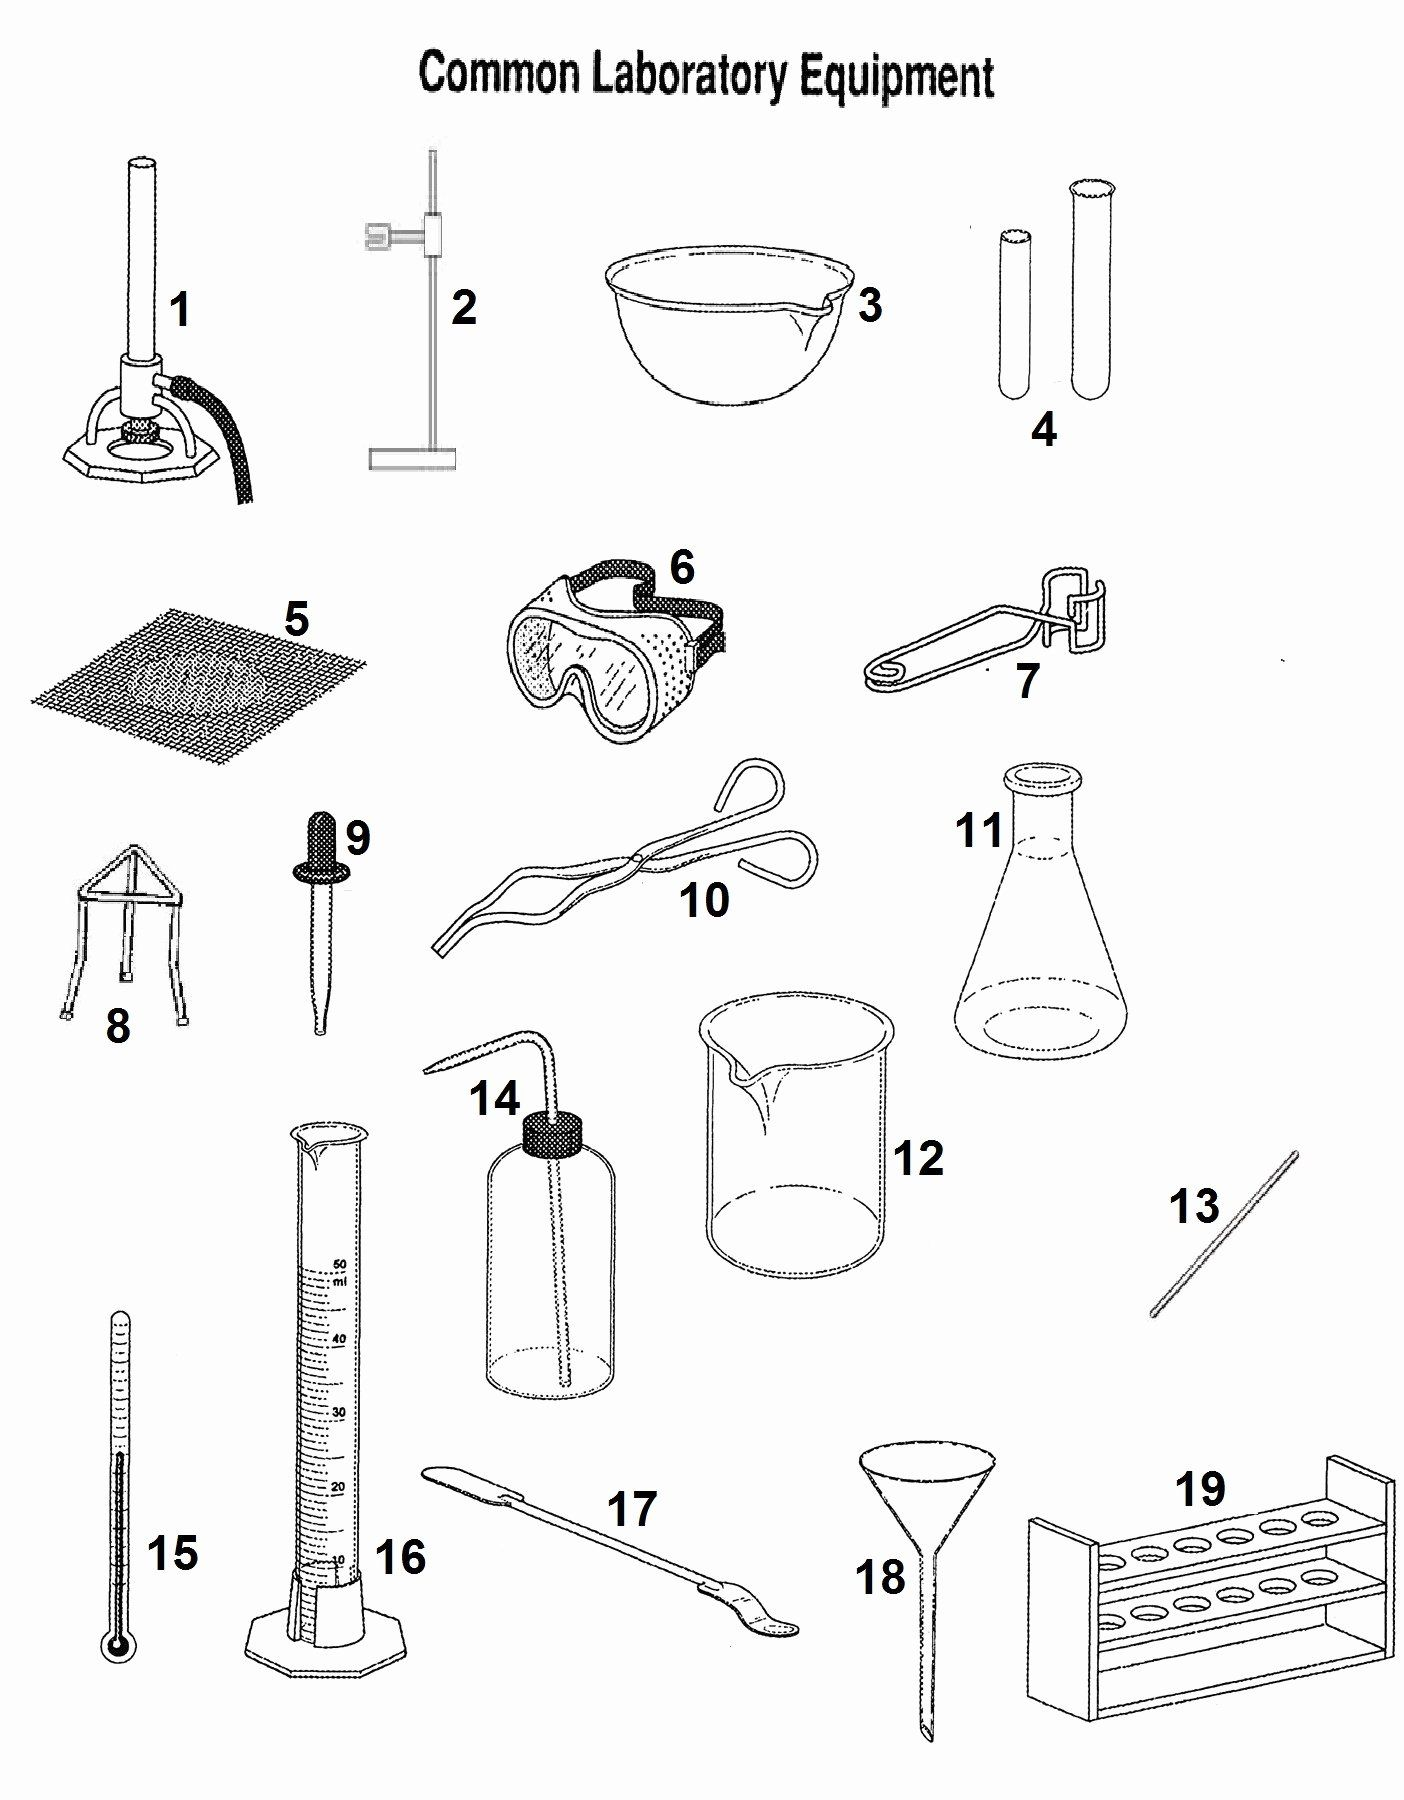 Pin by Amarie on Teaching! Chemistry lab equipment